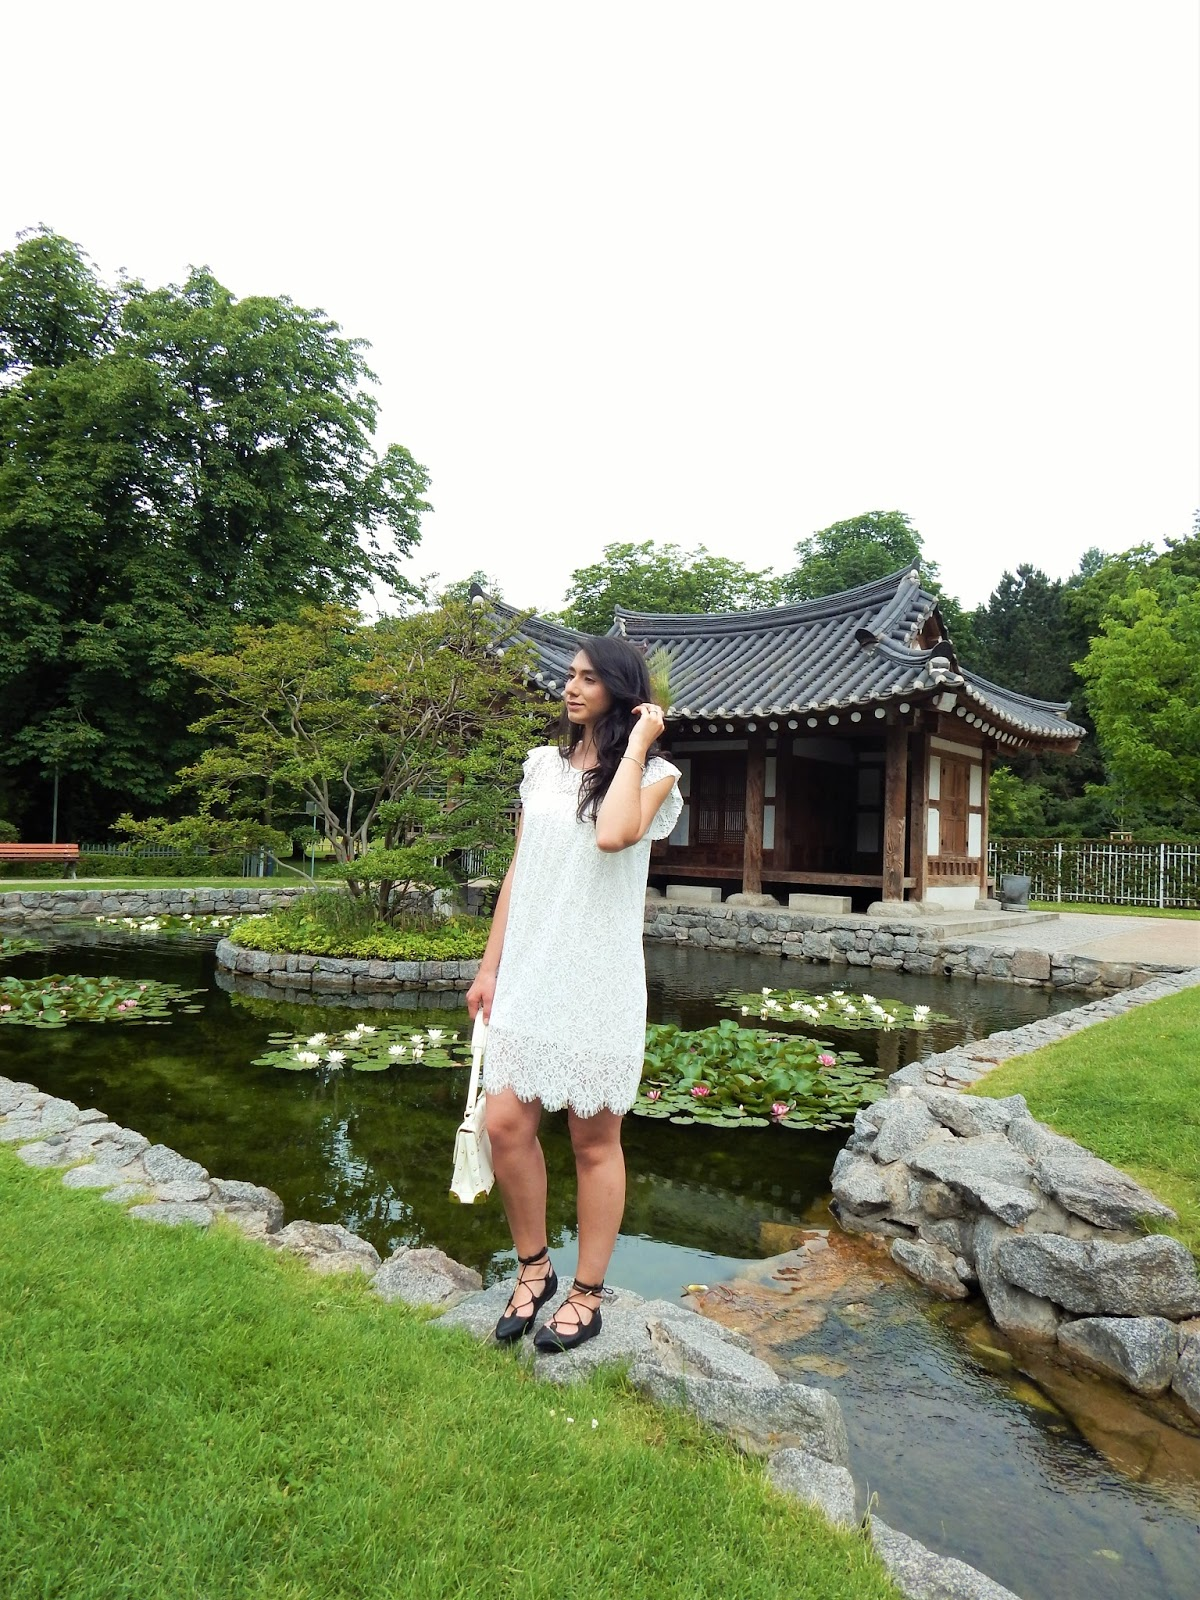 TRAVEL GUIDE: KOREAN GARDEN, FRANKFURT, GERMANY